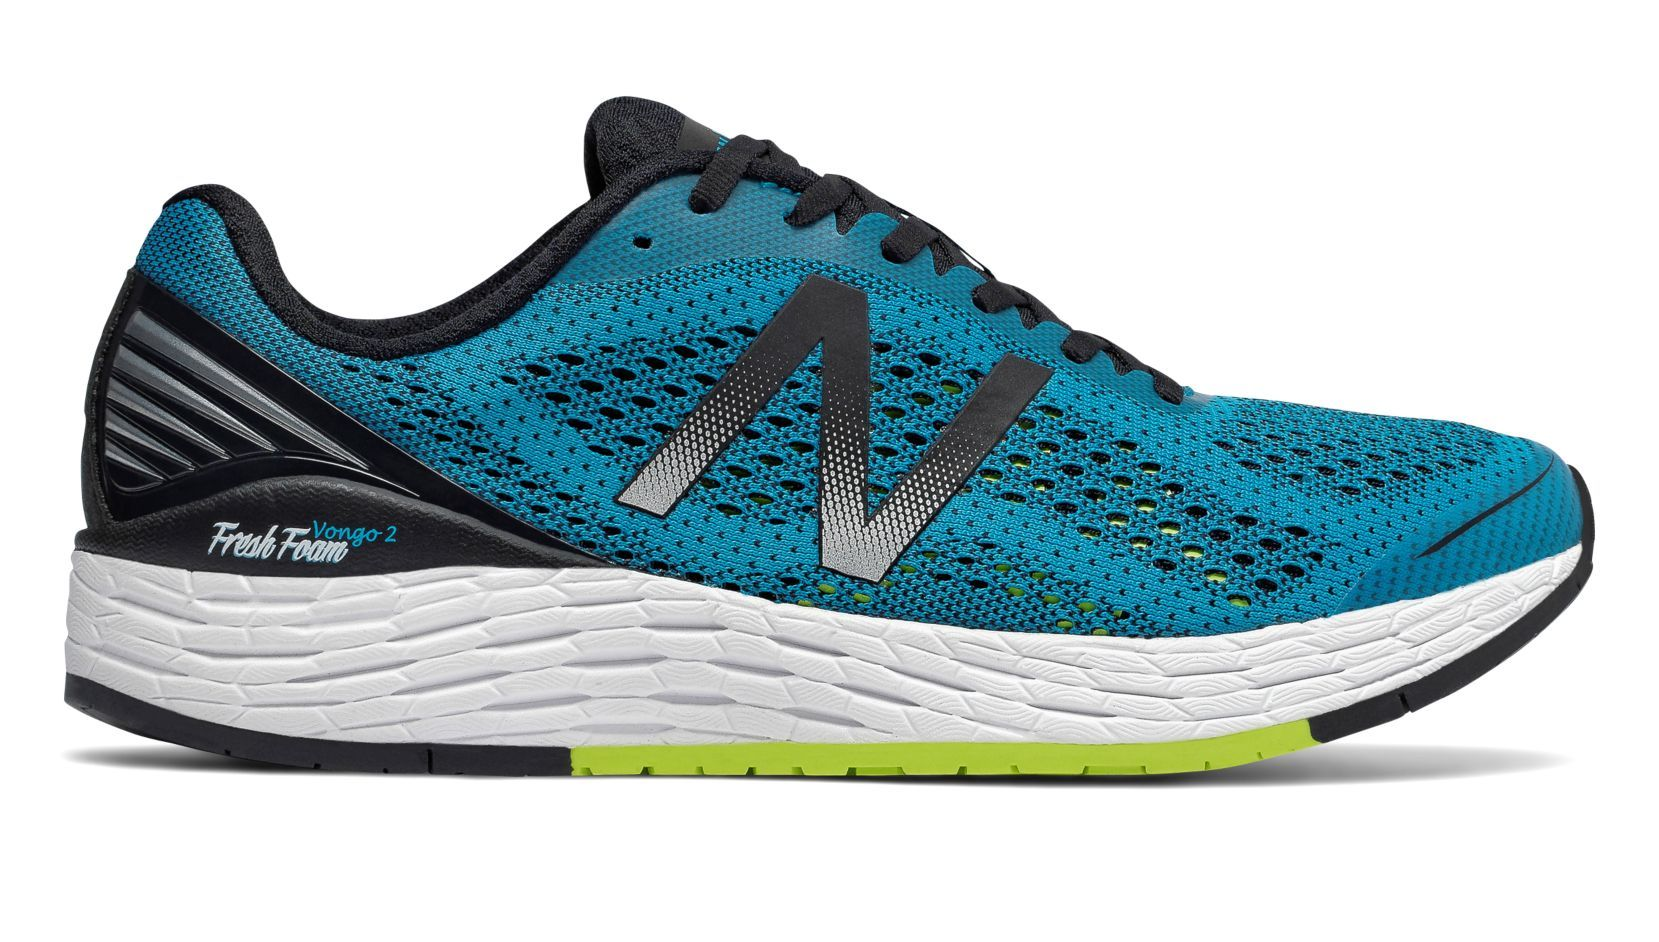 New Balance Vongo v2 in Blau